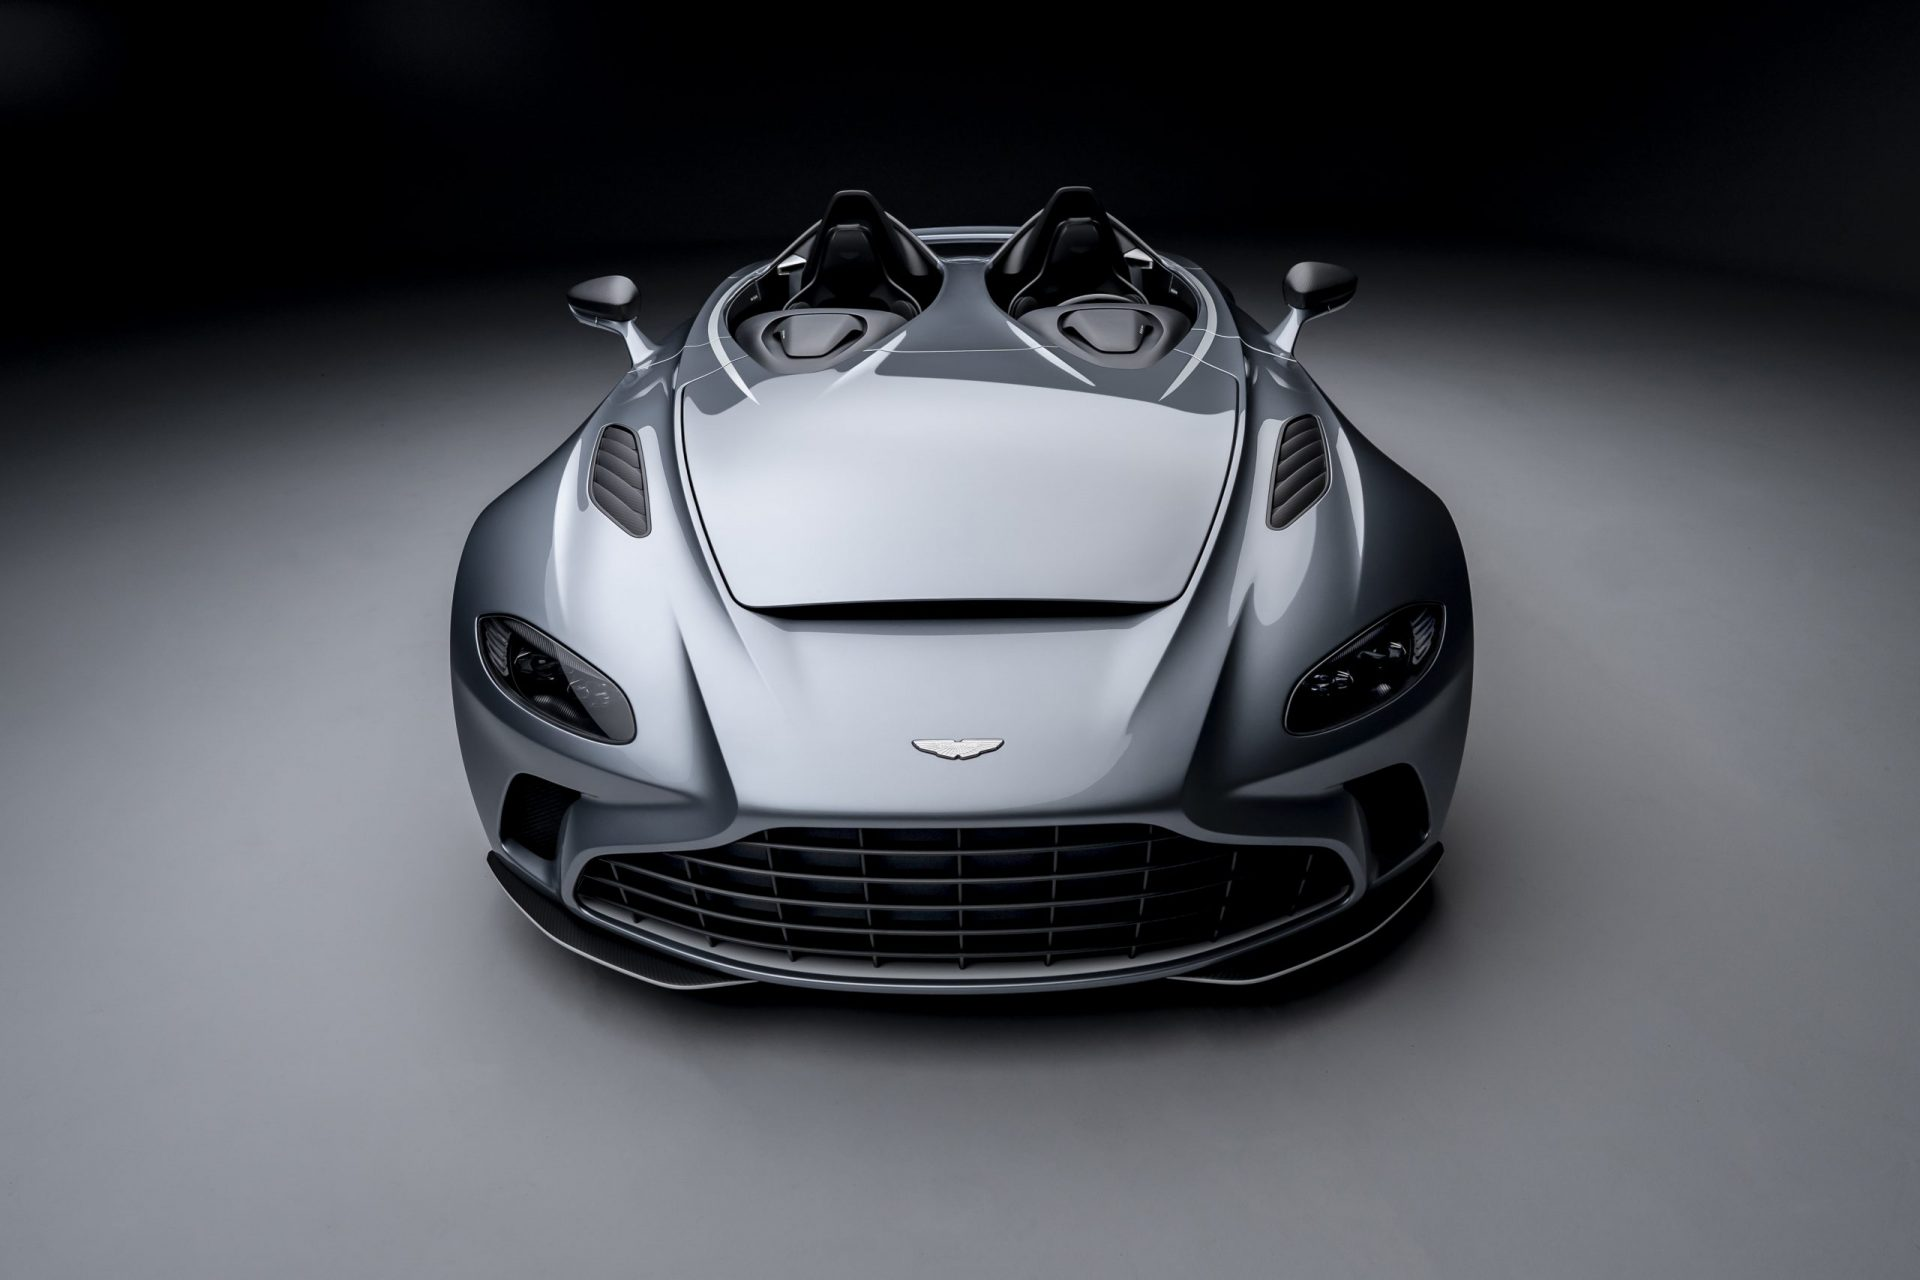 Aston Martin V12 Speedster A Puristic Limited Edition For The Most Demanding Drivers Watch I Love